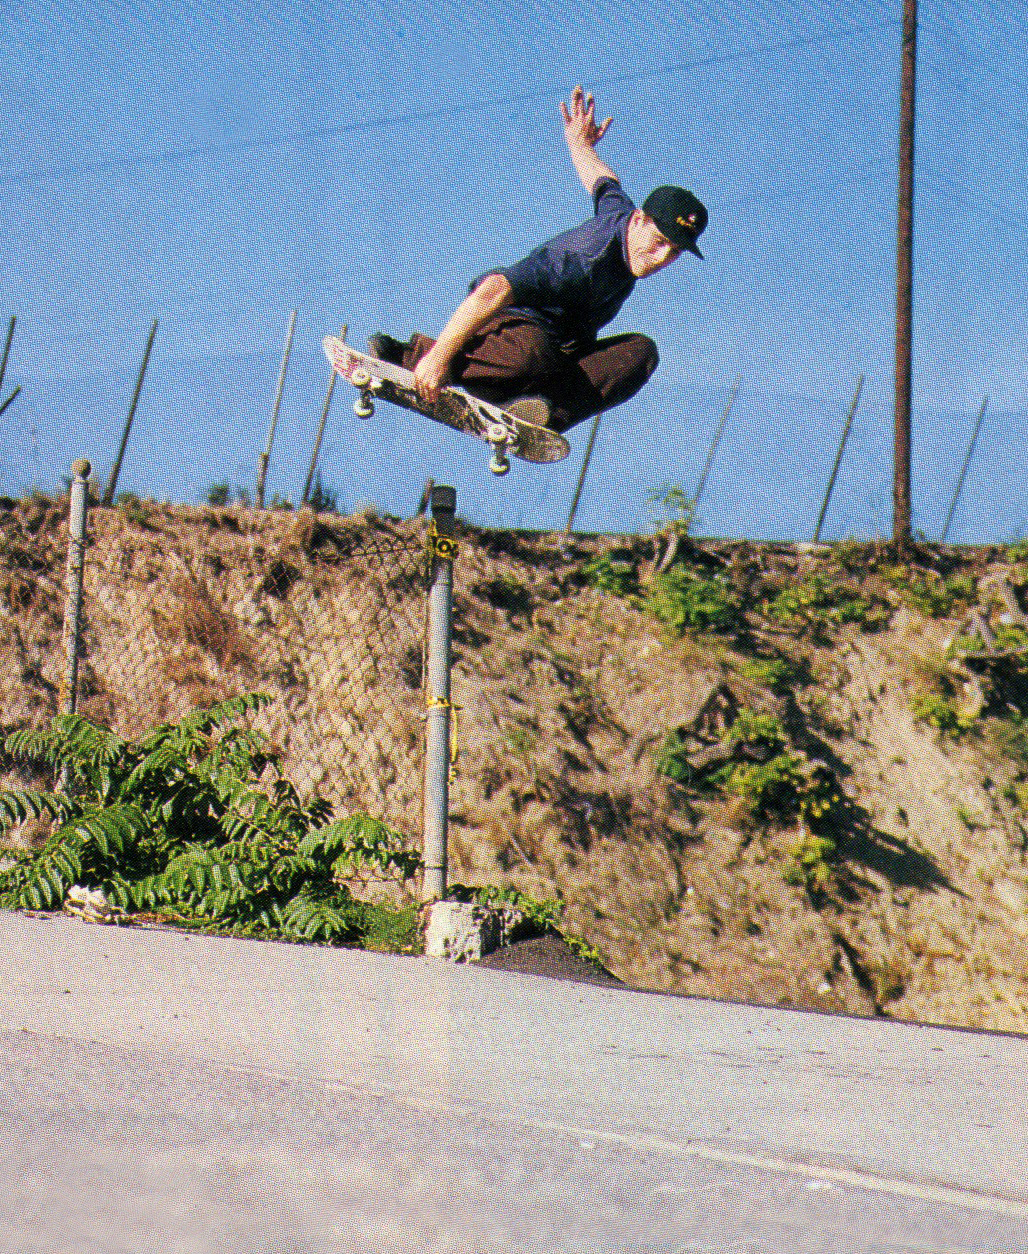 John Cardiel, Japan over a pole. Photo: Morford. TWS Aug. 1999, Vol. 17, No. 8.